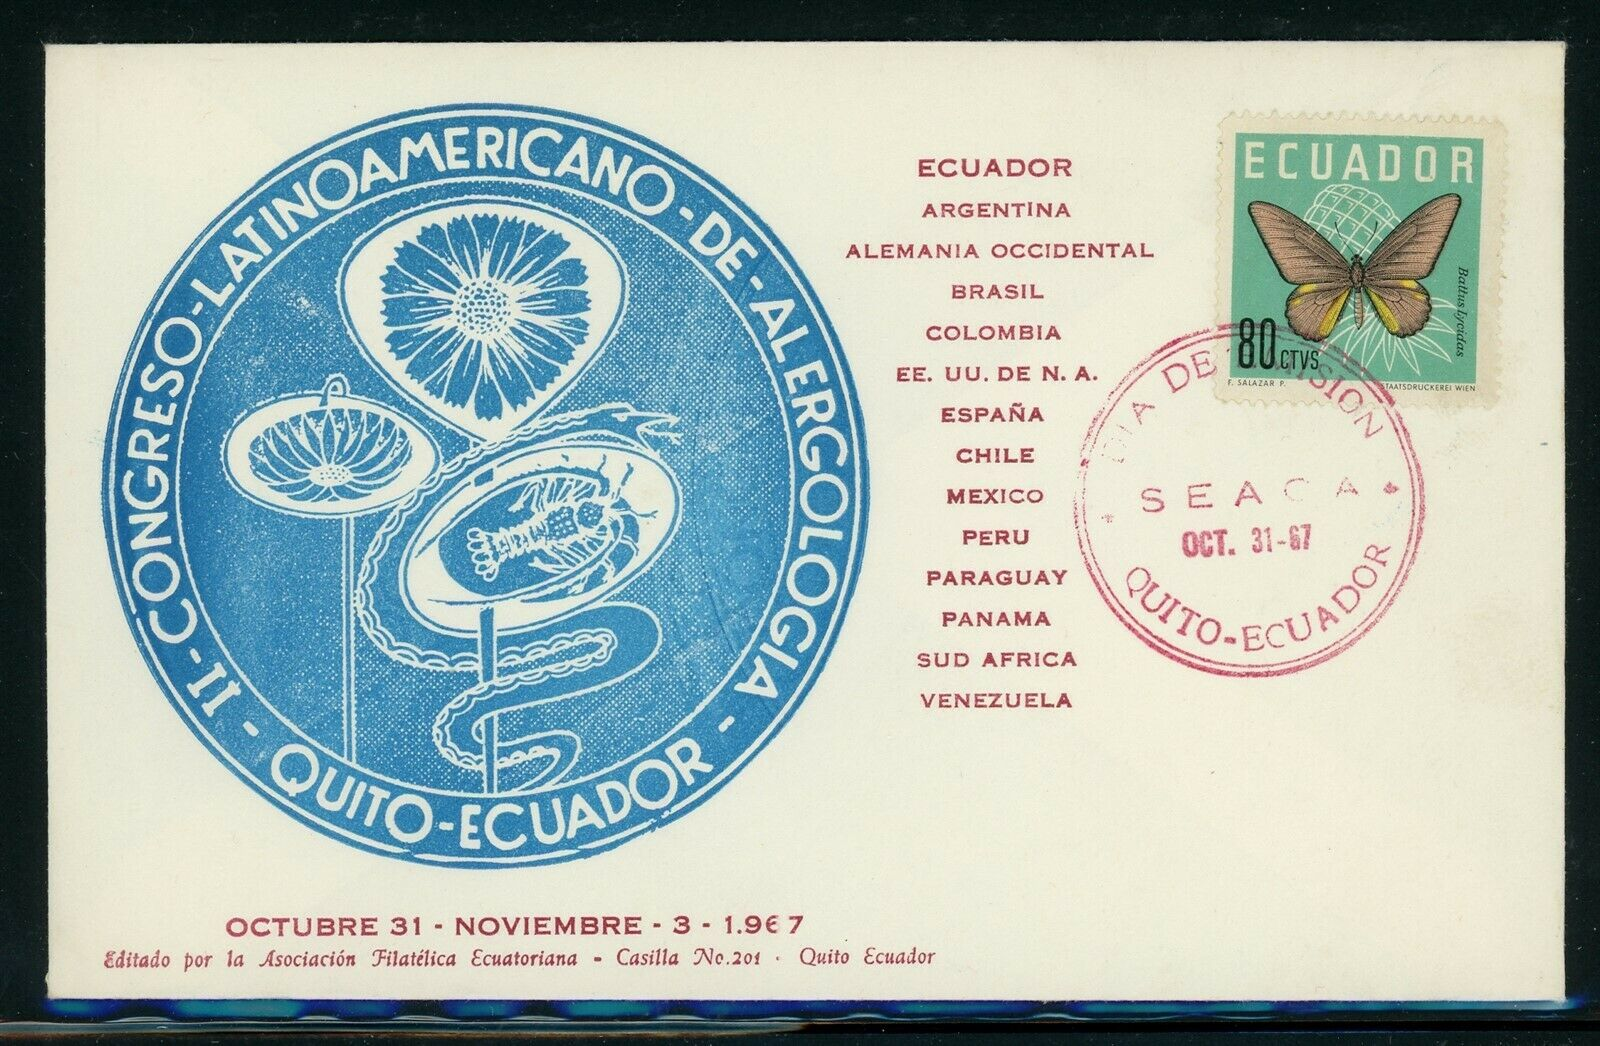 ECUADOR Butterflies Postal History Specialized Scott 683 Allergy Conference  - $1.10